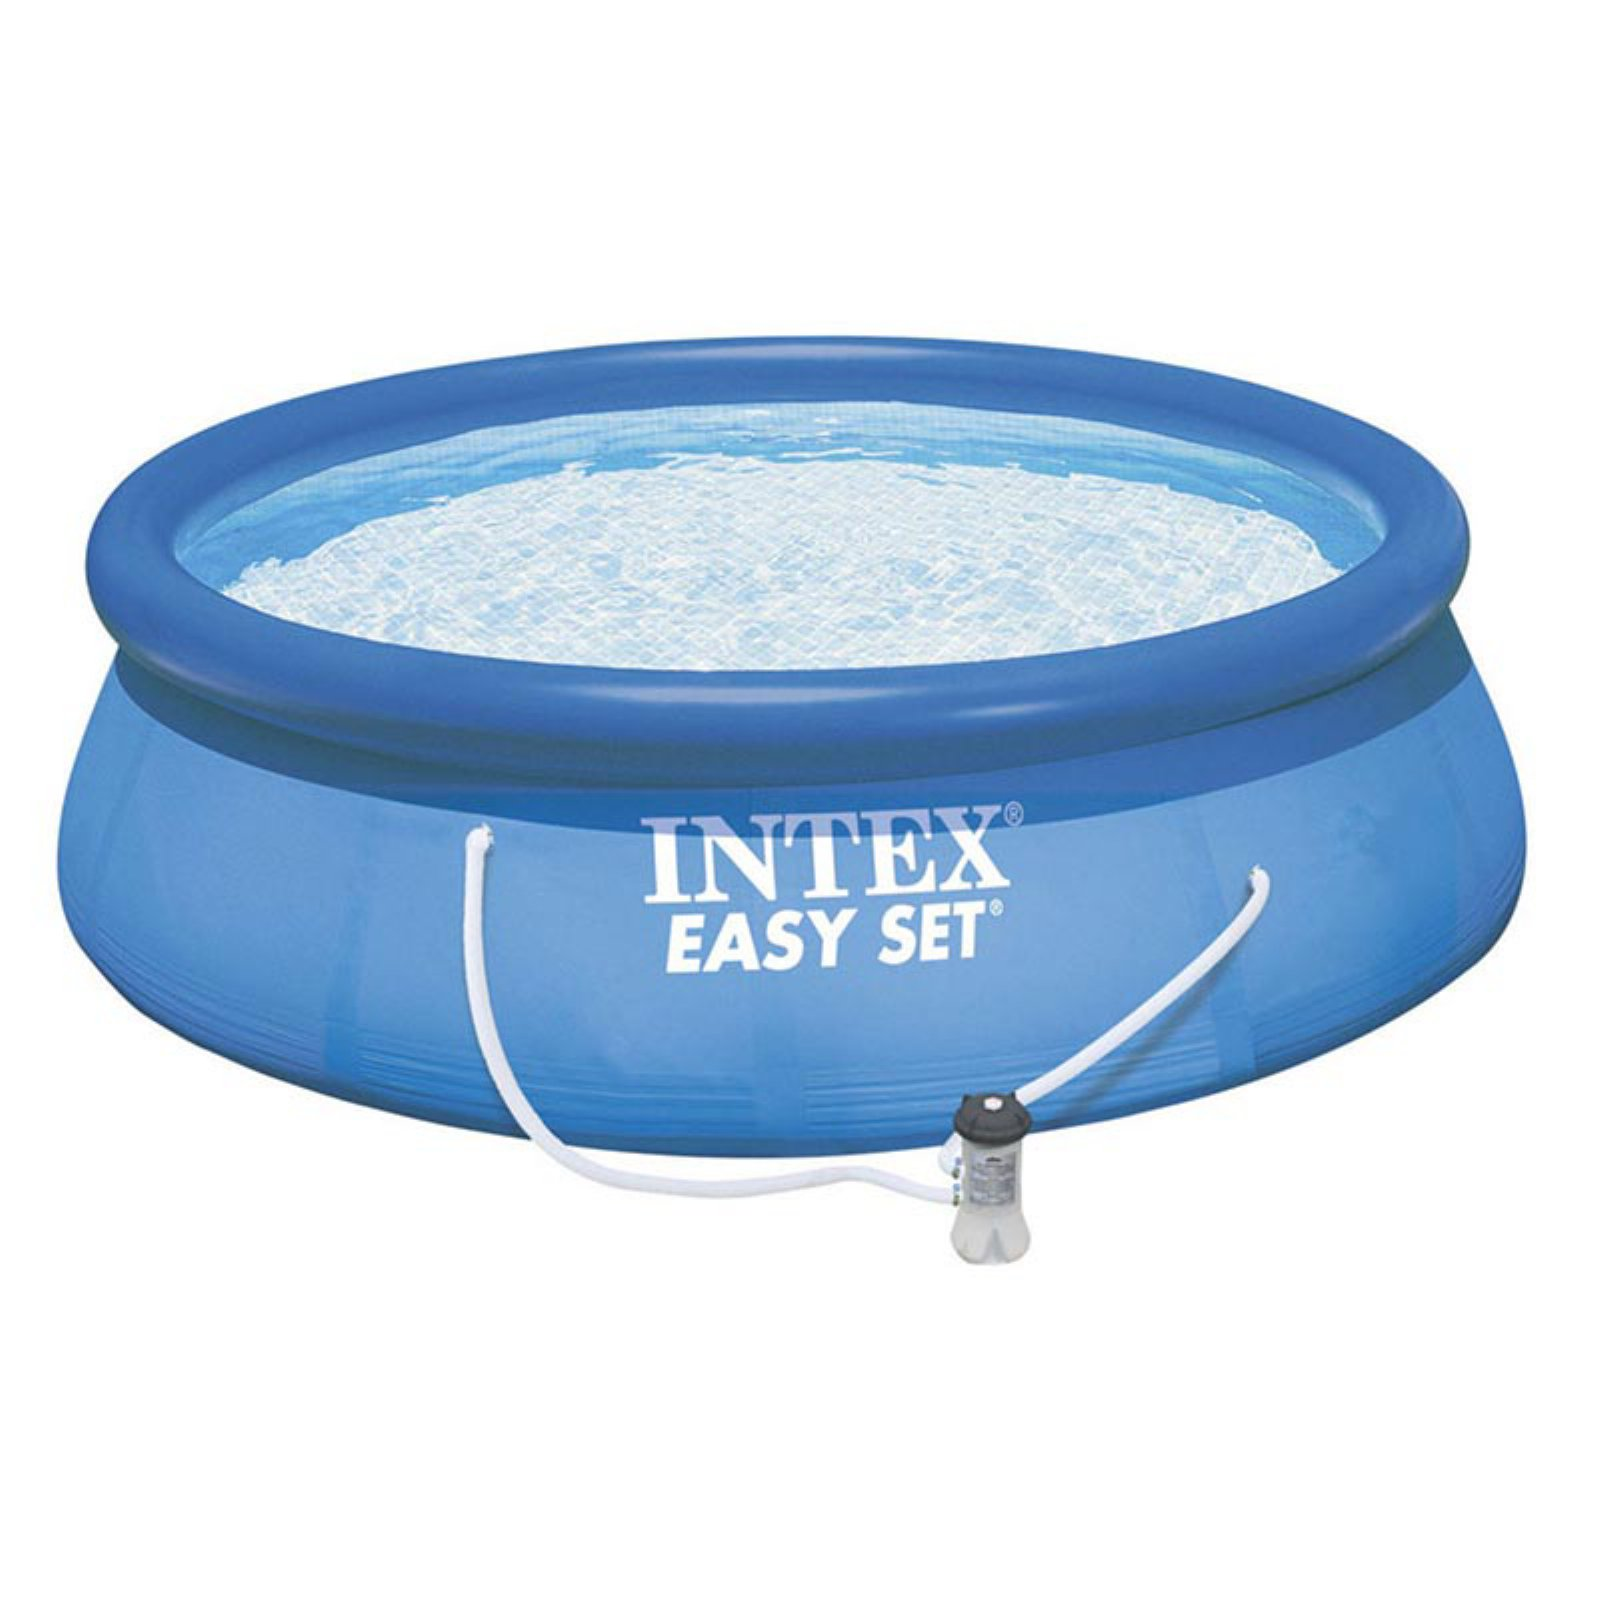 Intex 15' x 33'' Easy Set Above Ground Swimming Pool with Filter Pump by Intex